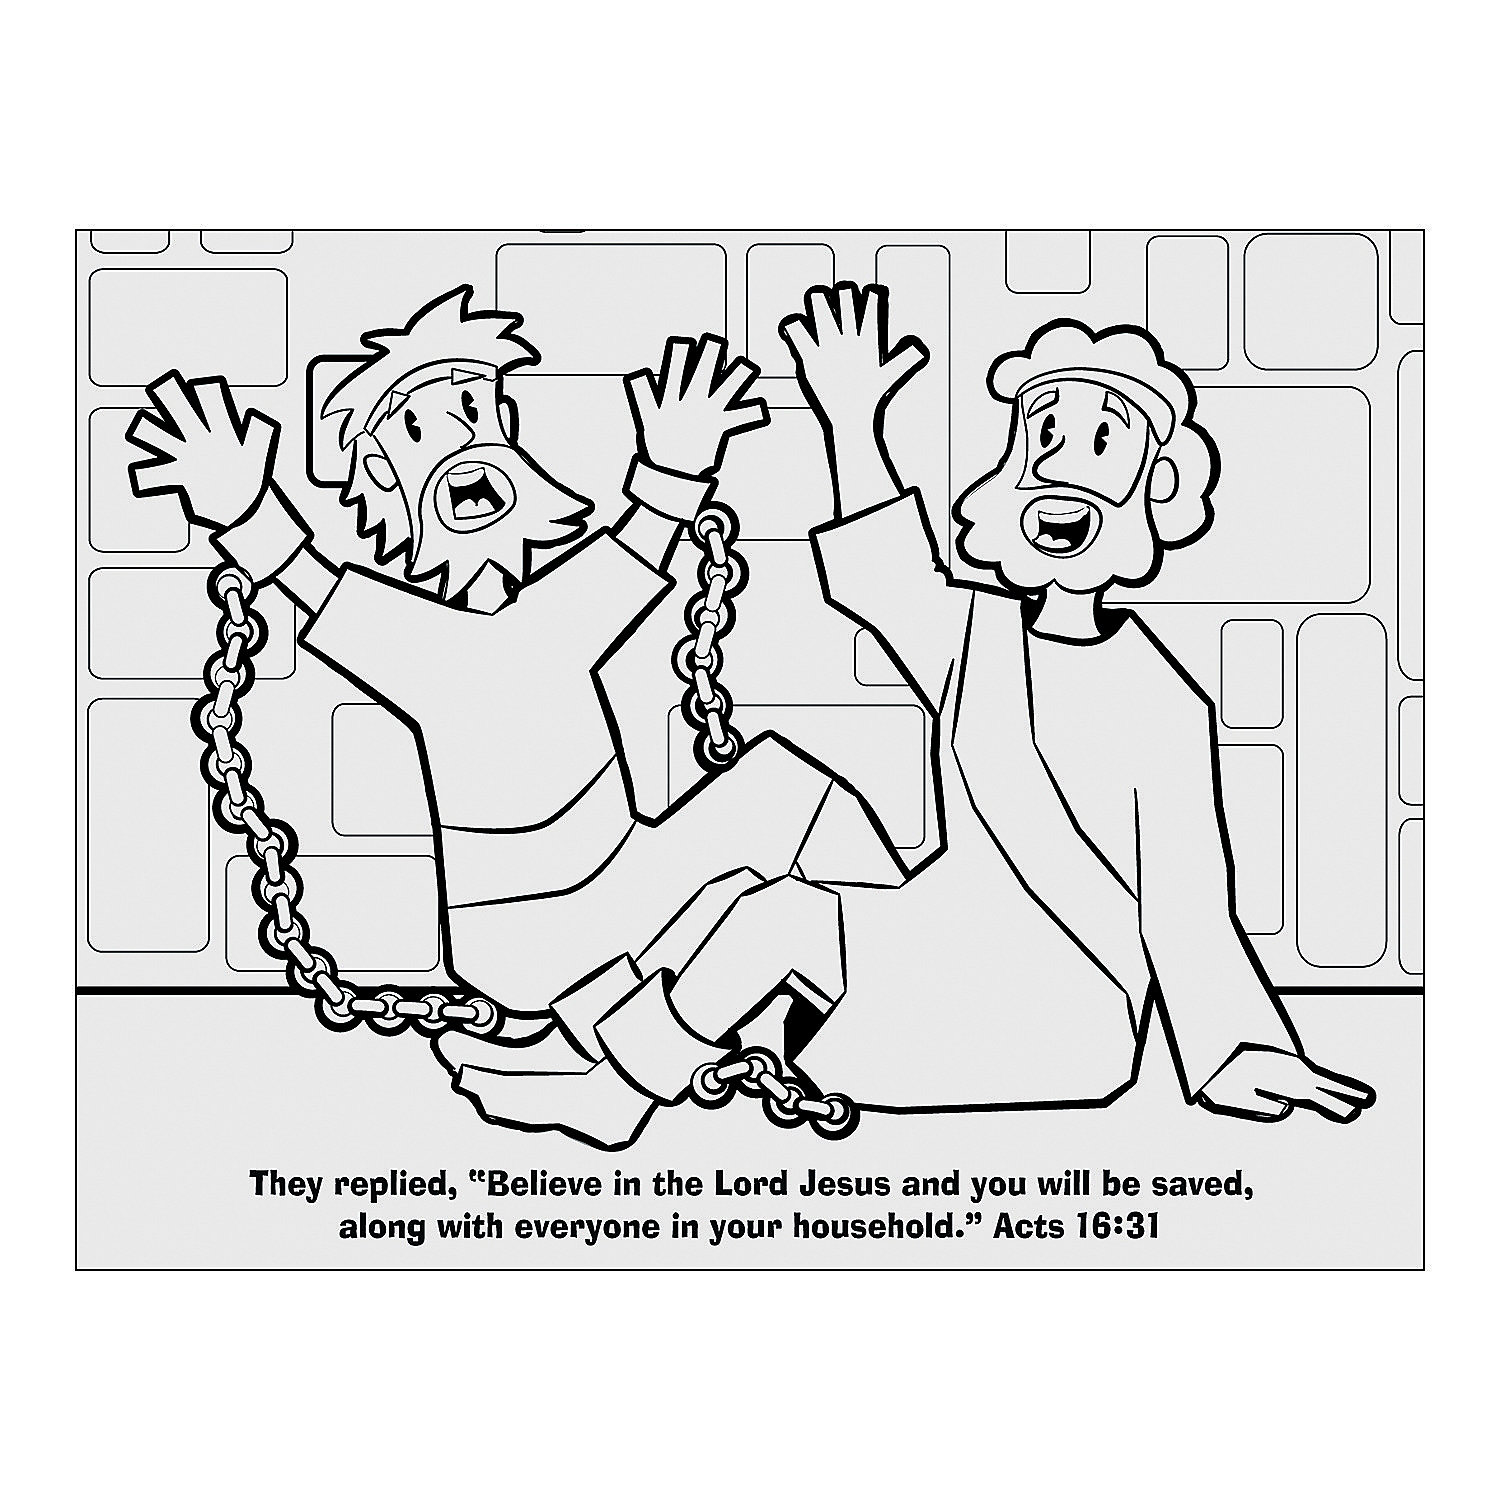 the philippian jailer coloring pages - photo#7